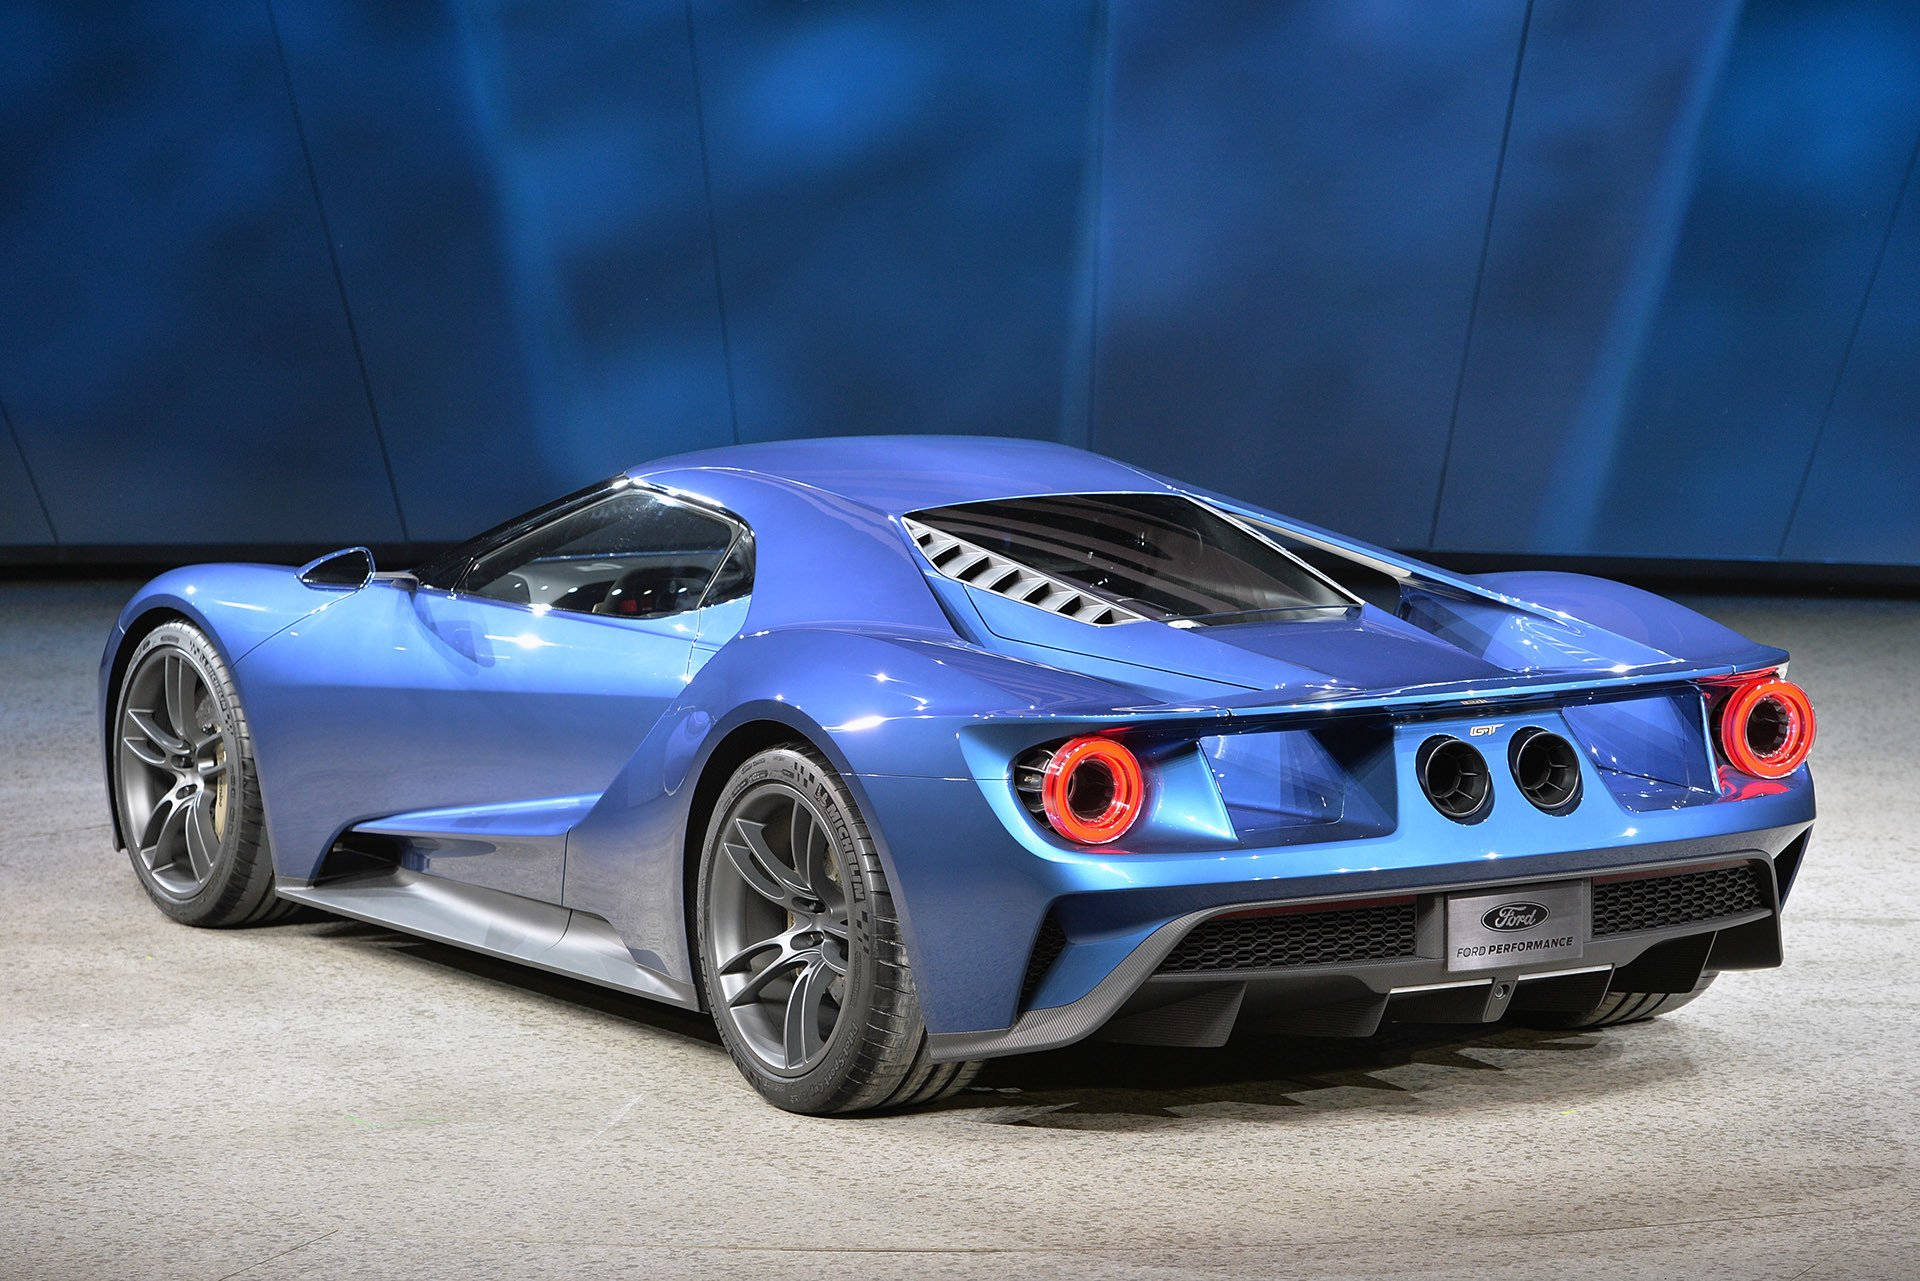 Ford G T Coupe Cars Supercars Wallpaper